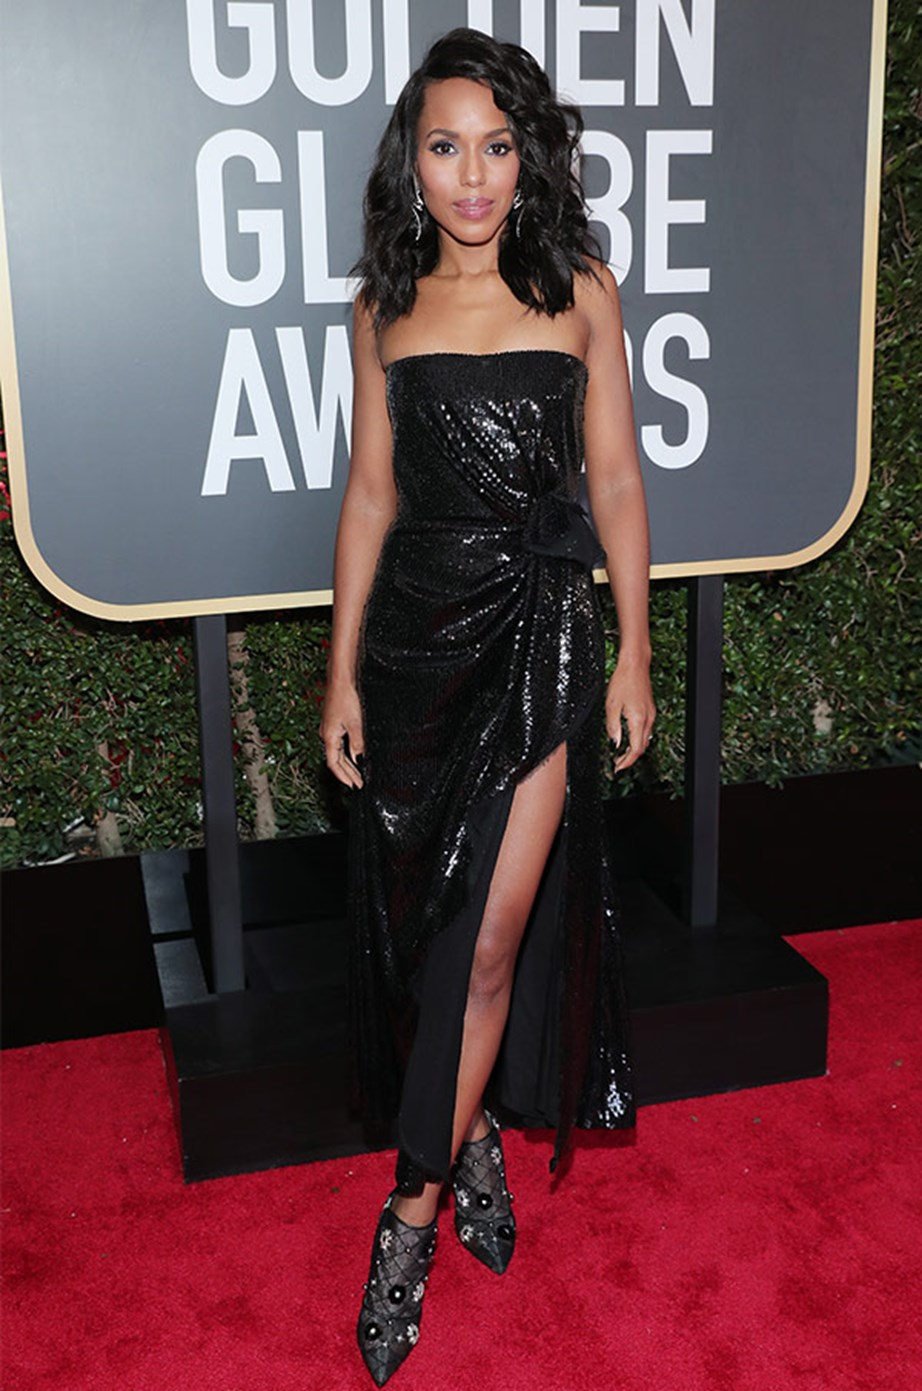 **Kerry Washington** and her famous friends appeared in several videos vocalising their support of the Time's Up movement.